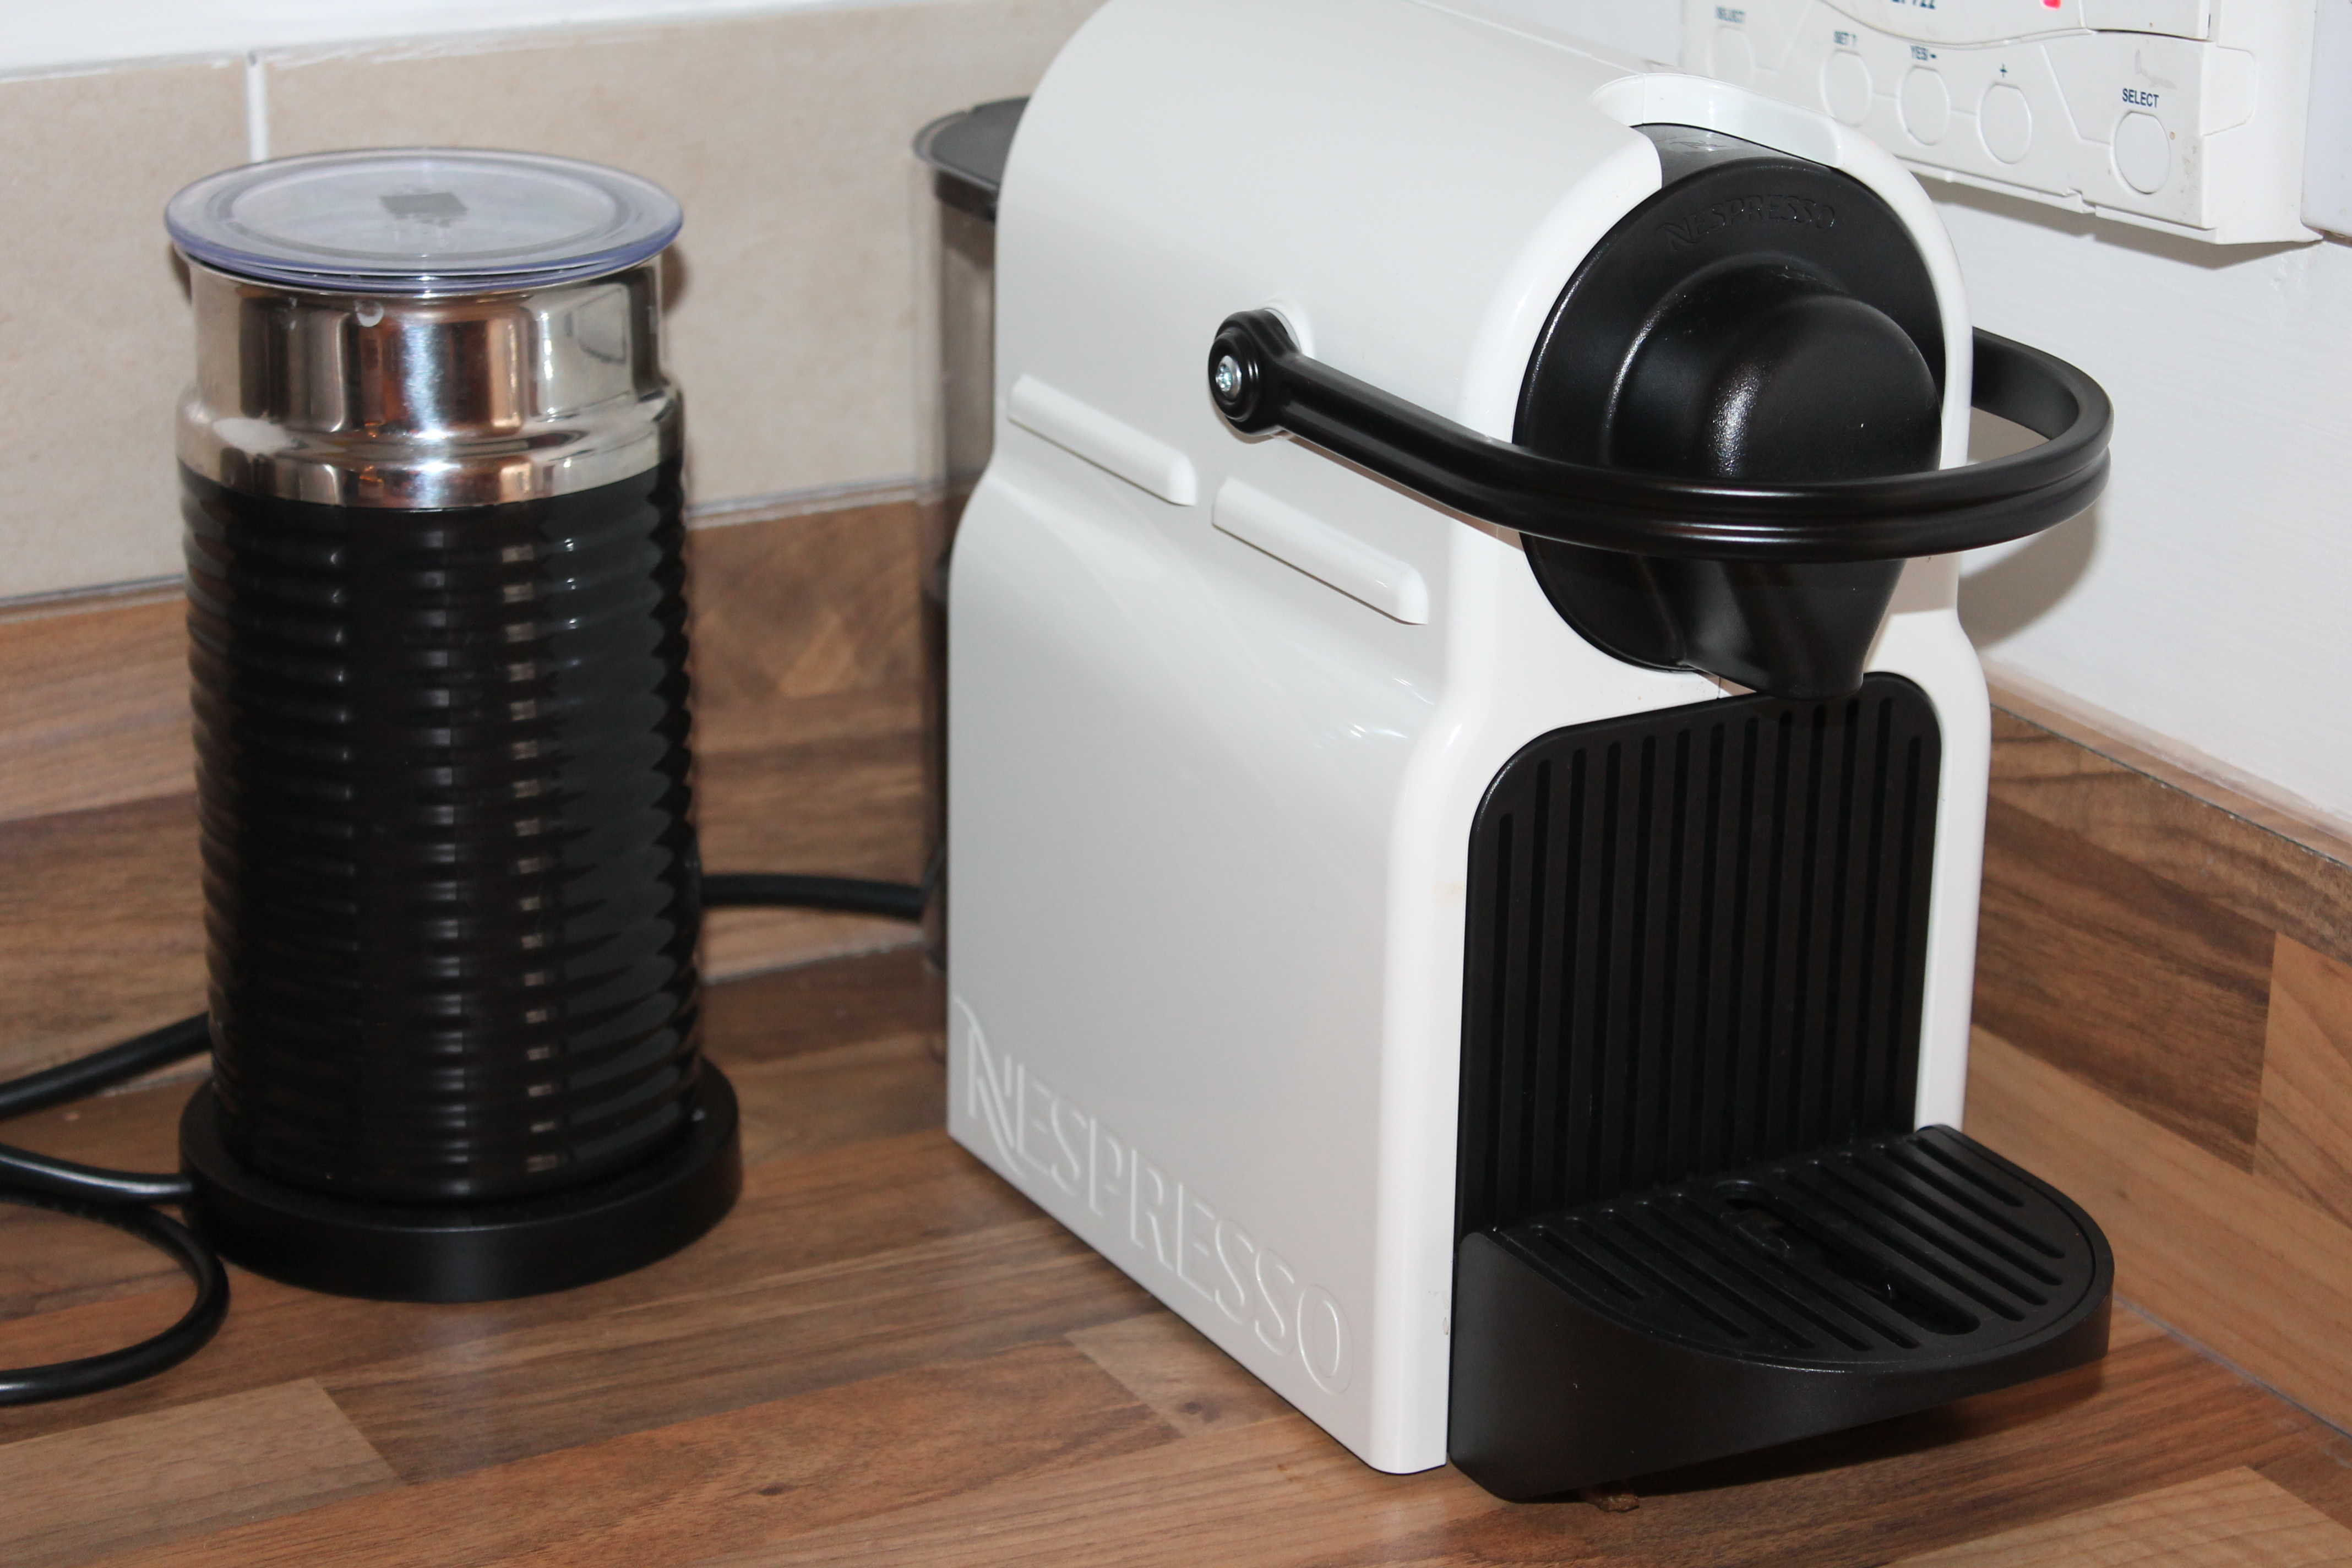 tassimo fidelia t40 nespresso krups inissia coffee machine review my life my passion. Black Bedroom Furniture Sets. Home Design Ideas